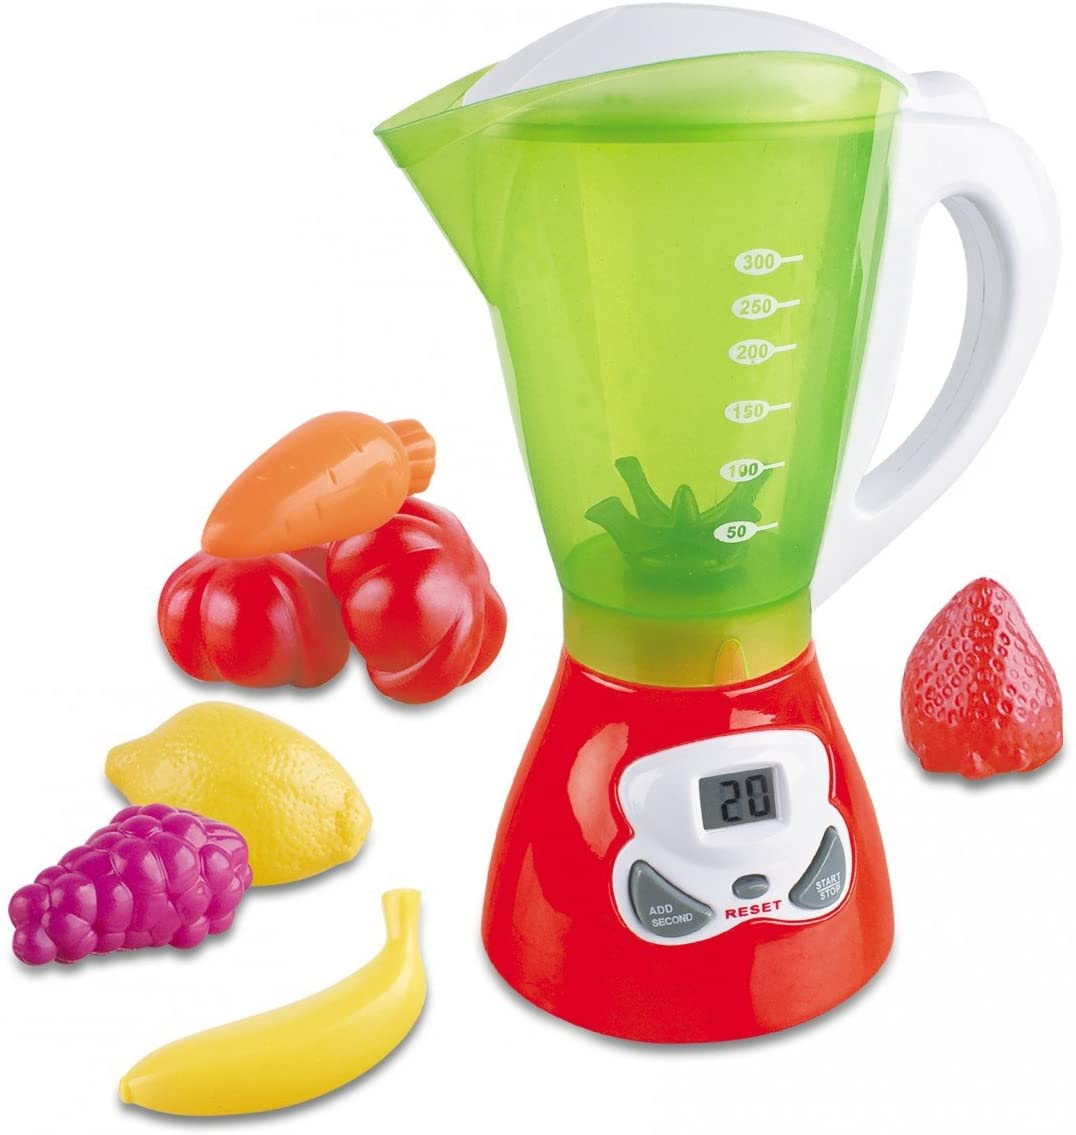 Liberty Imports My First Kitchen Appliances Toy - Kids Pretend Play Gourmet Cooking Set with Lights and Sounds (Juice Blender)